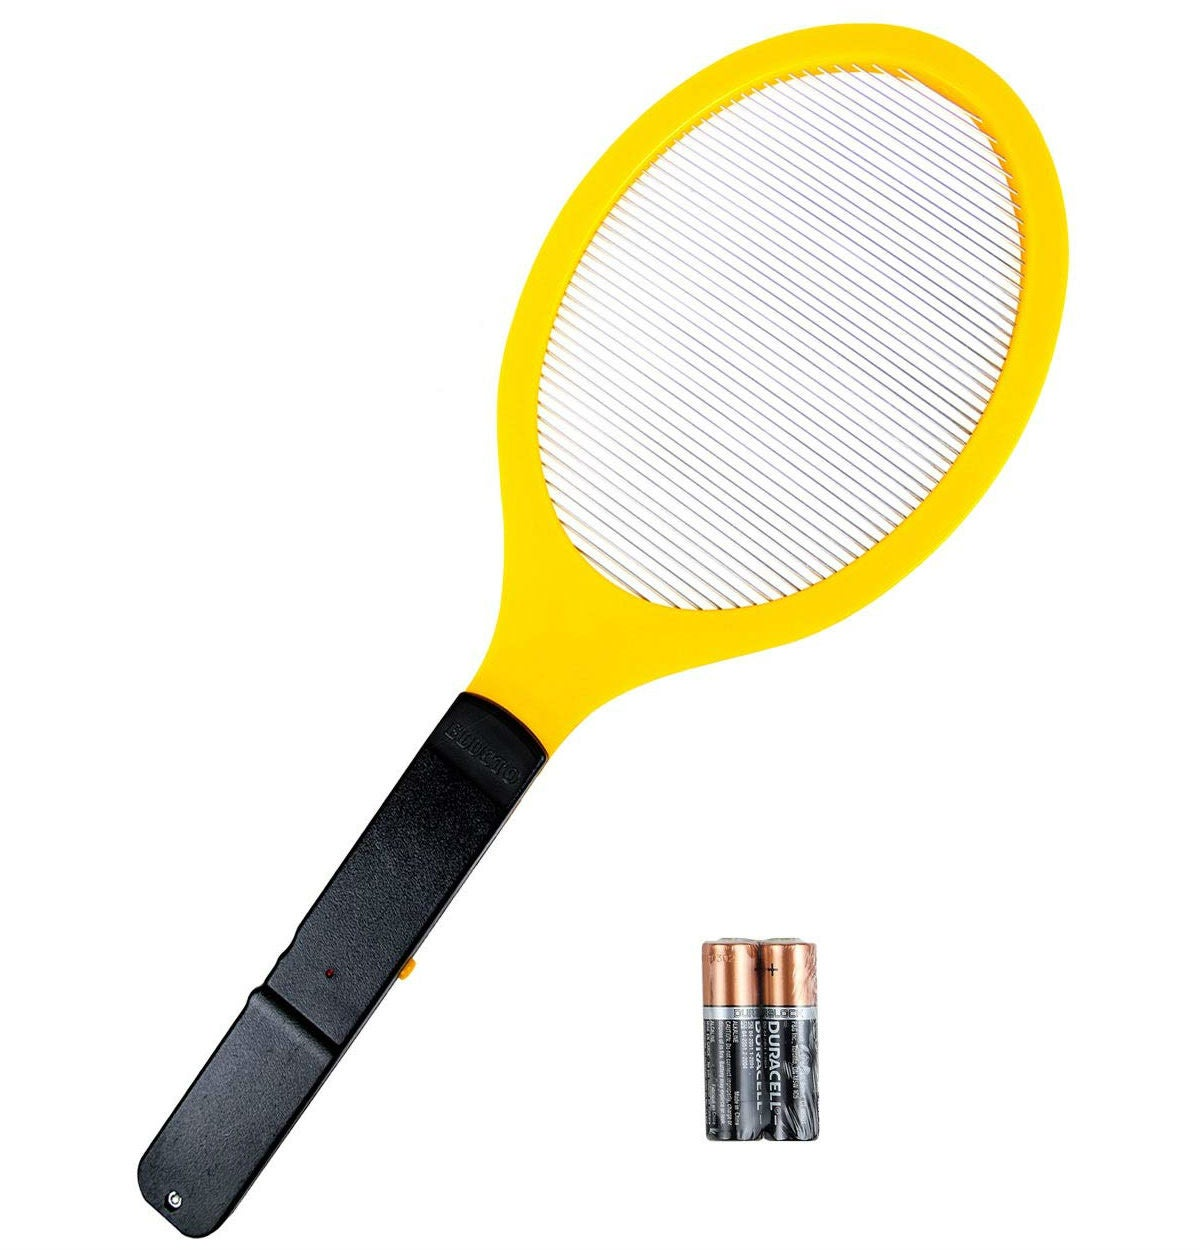 Best Racket-Type Bug Zapper: ELUCTO